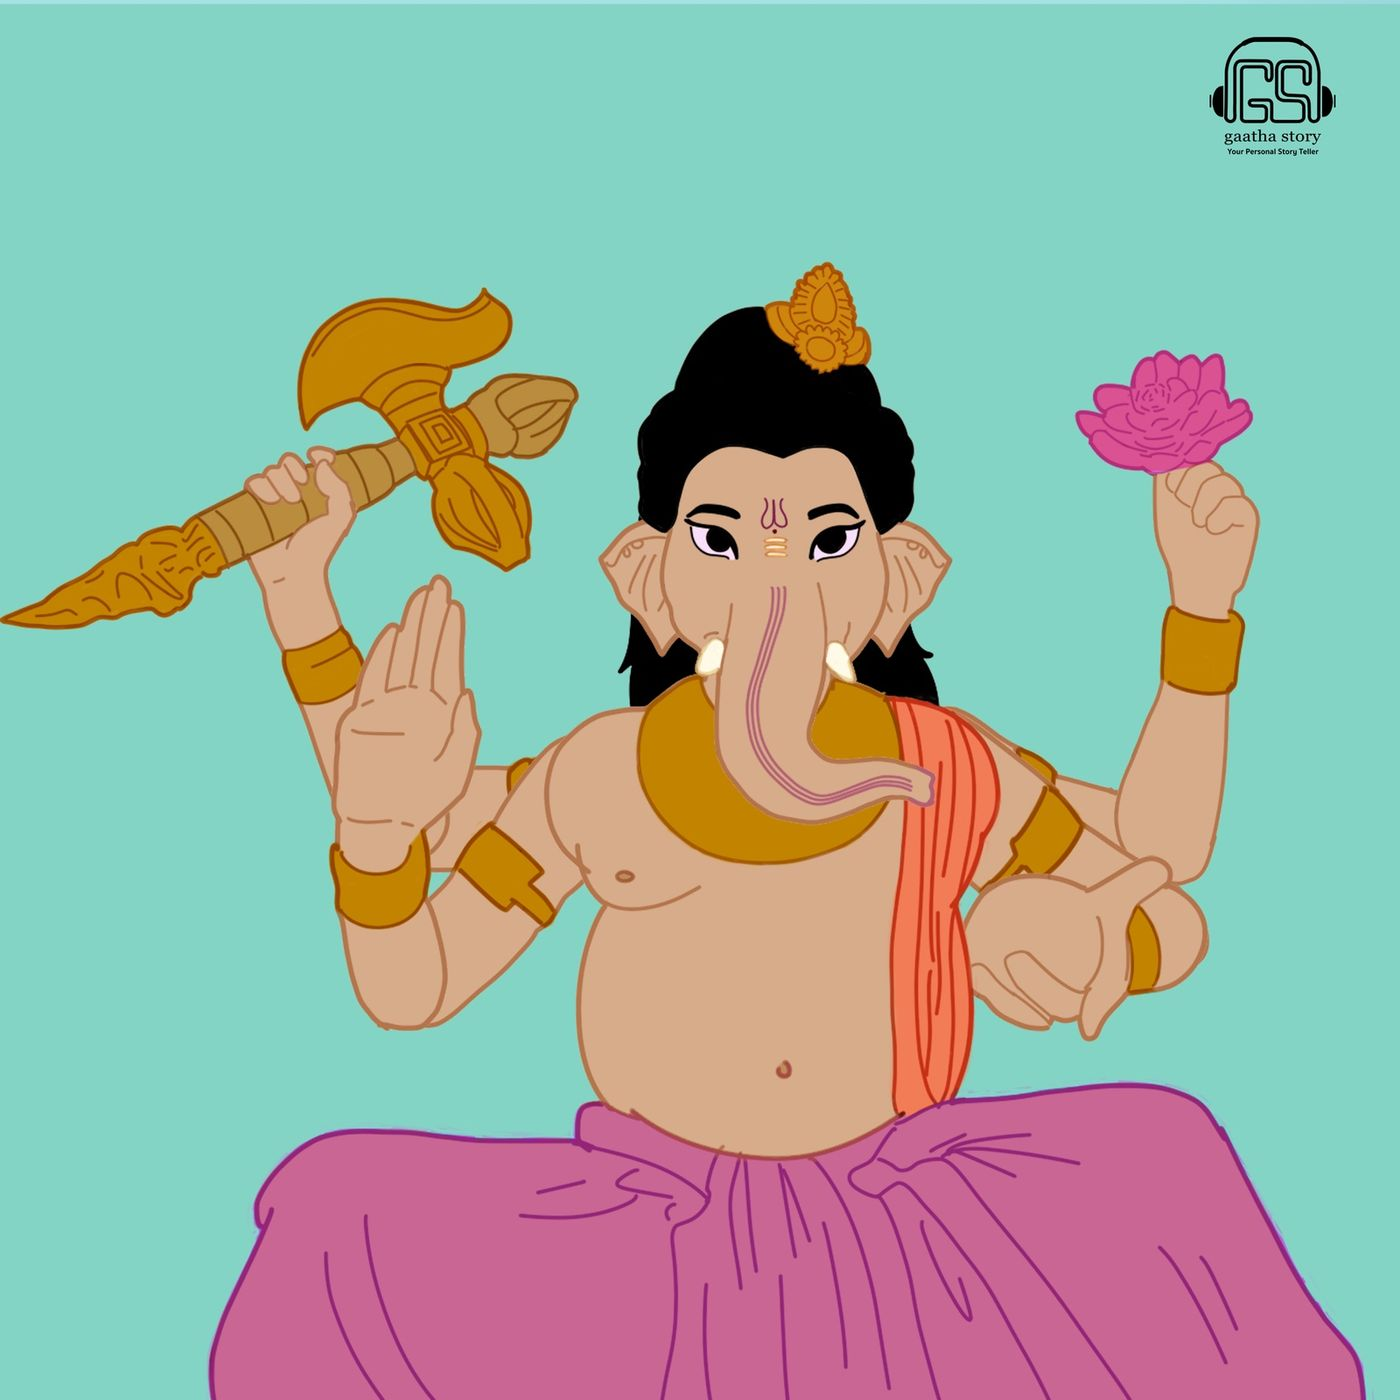 1: Introduction to Second Season: Lord Ganesha Series